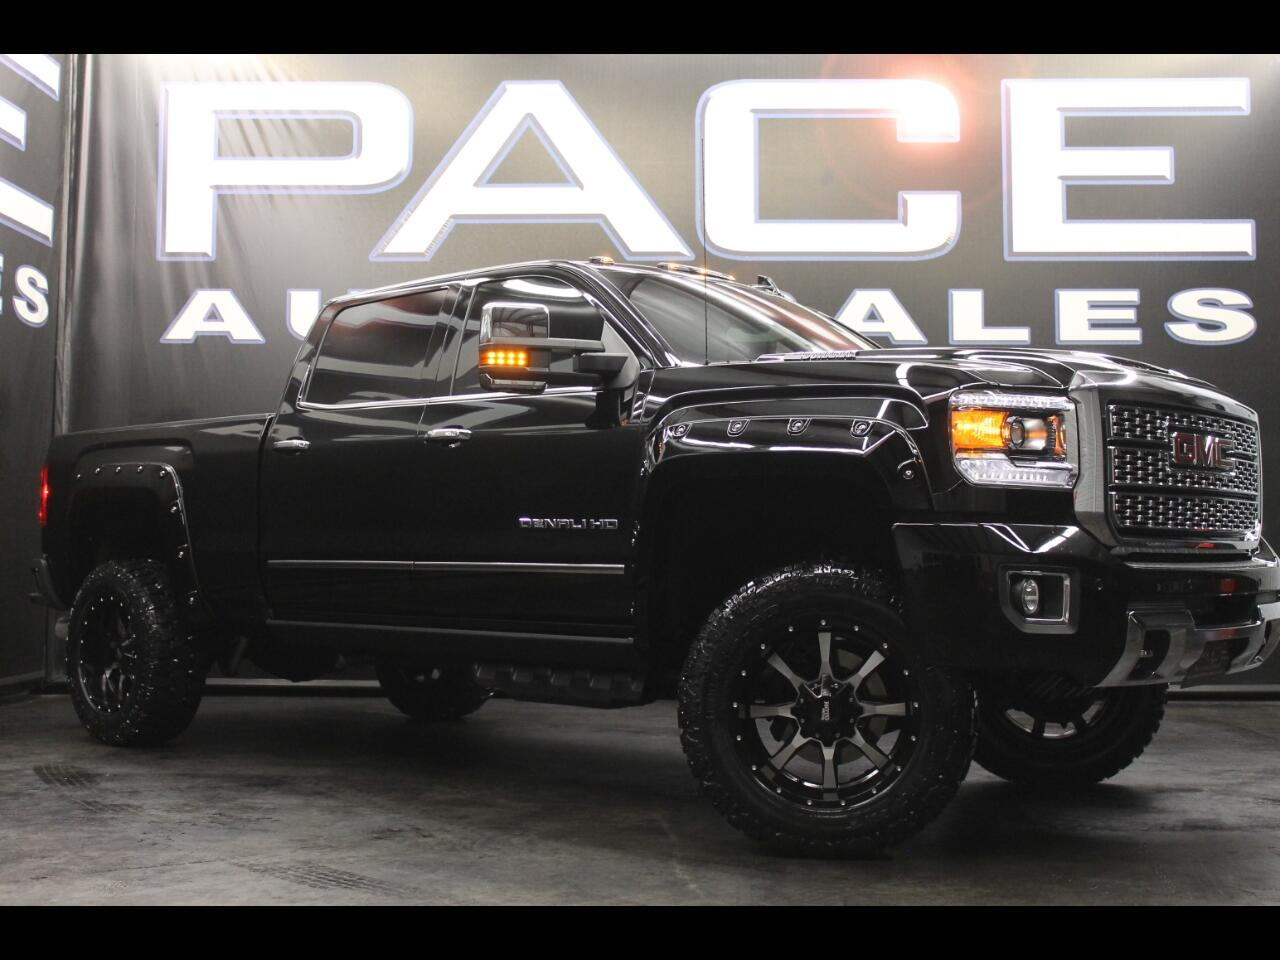 2019 GMC Sierra 2500HD 4WD Crew Cab Denali Lifted Custom